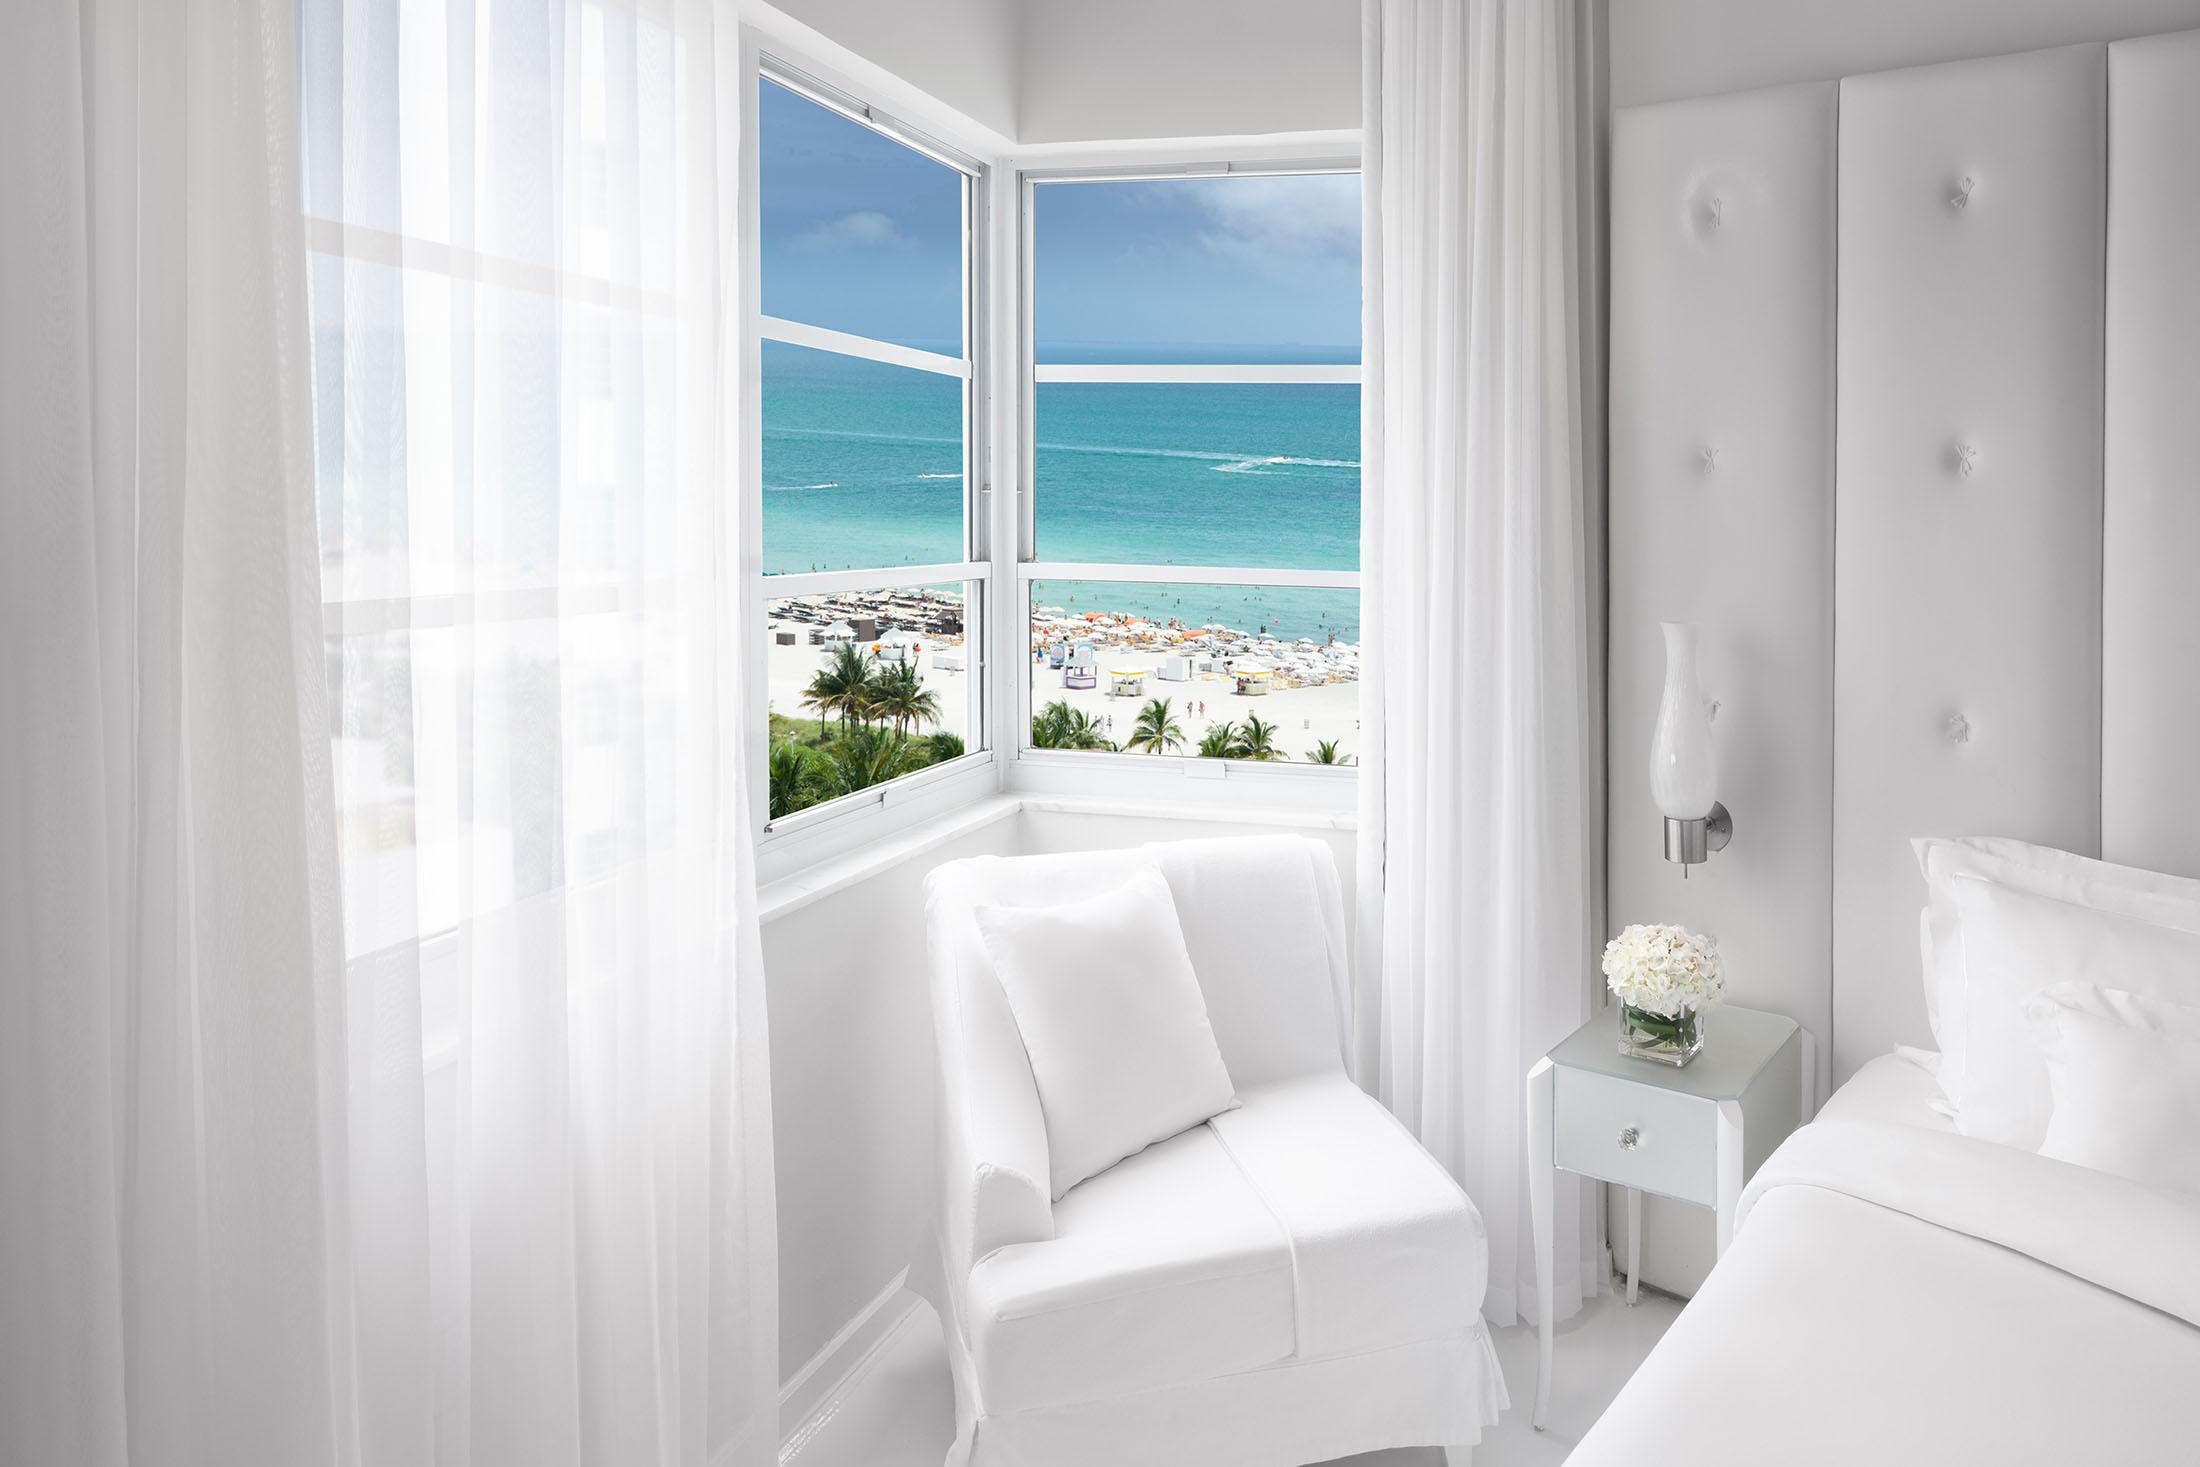 White chair in front of window with ocean view